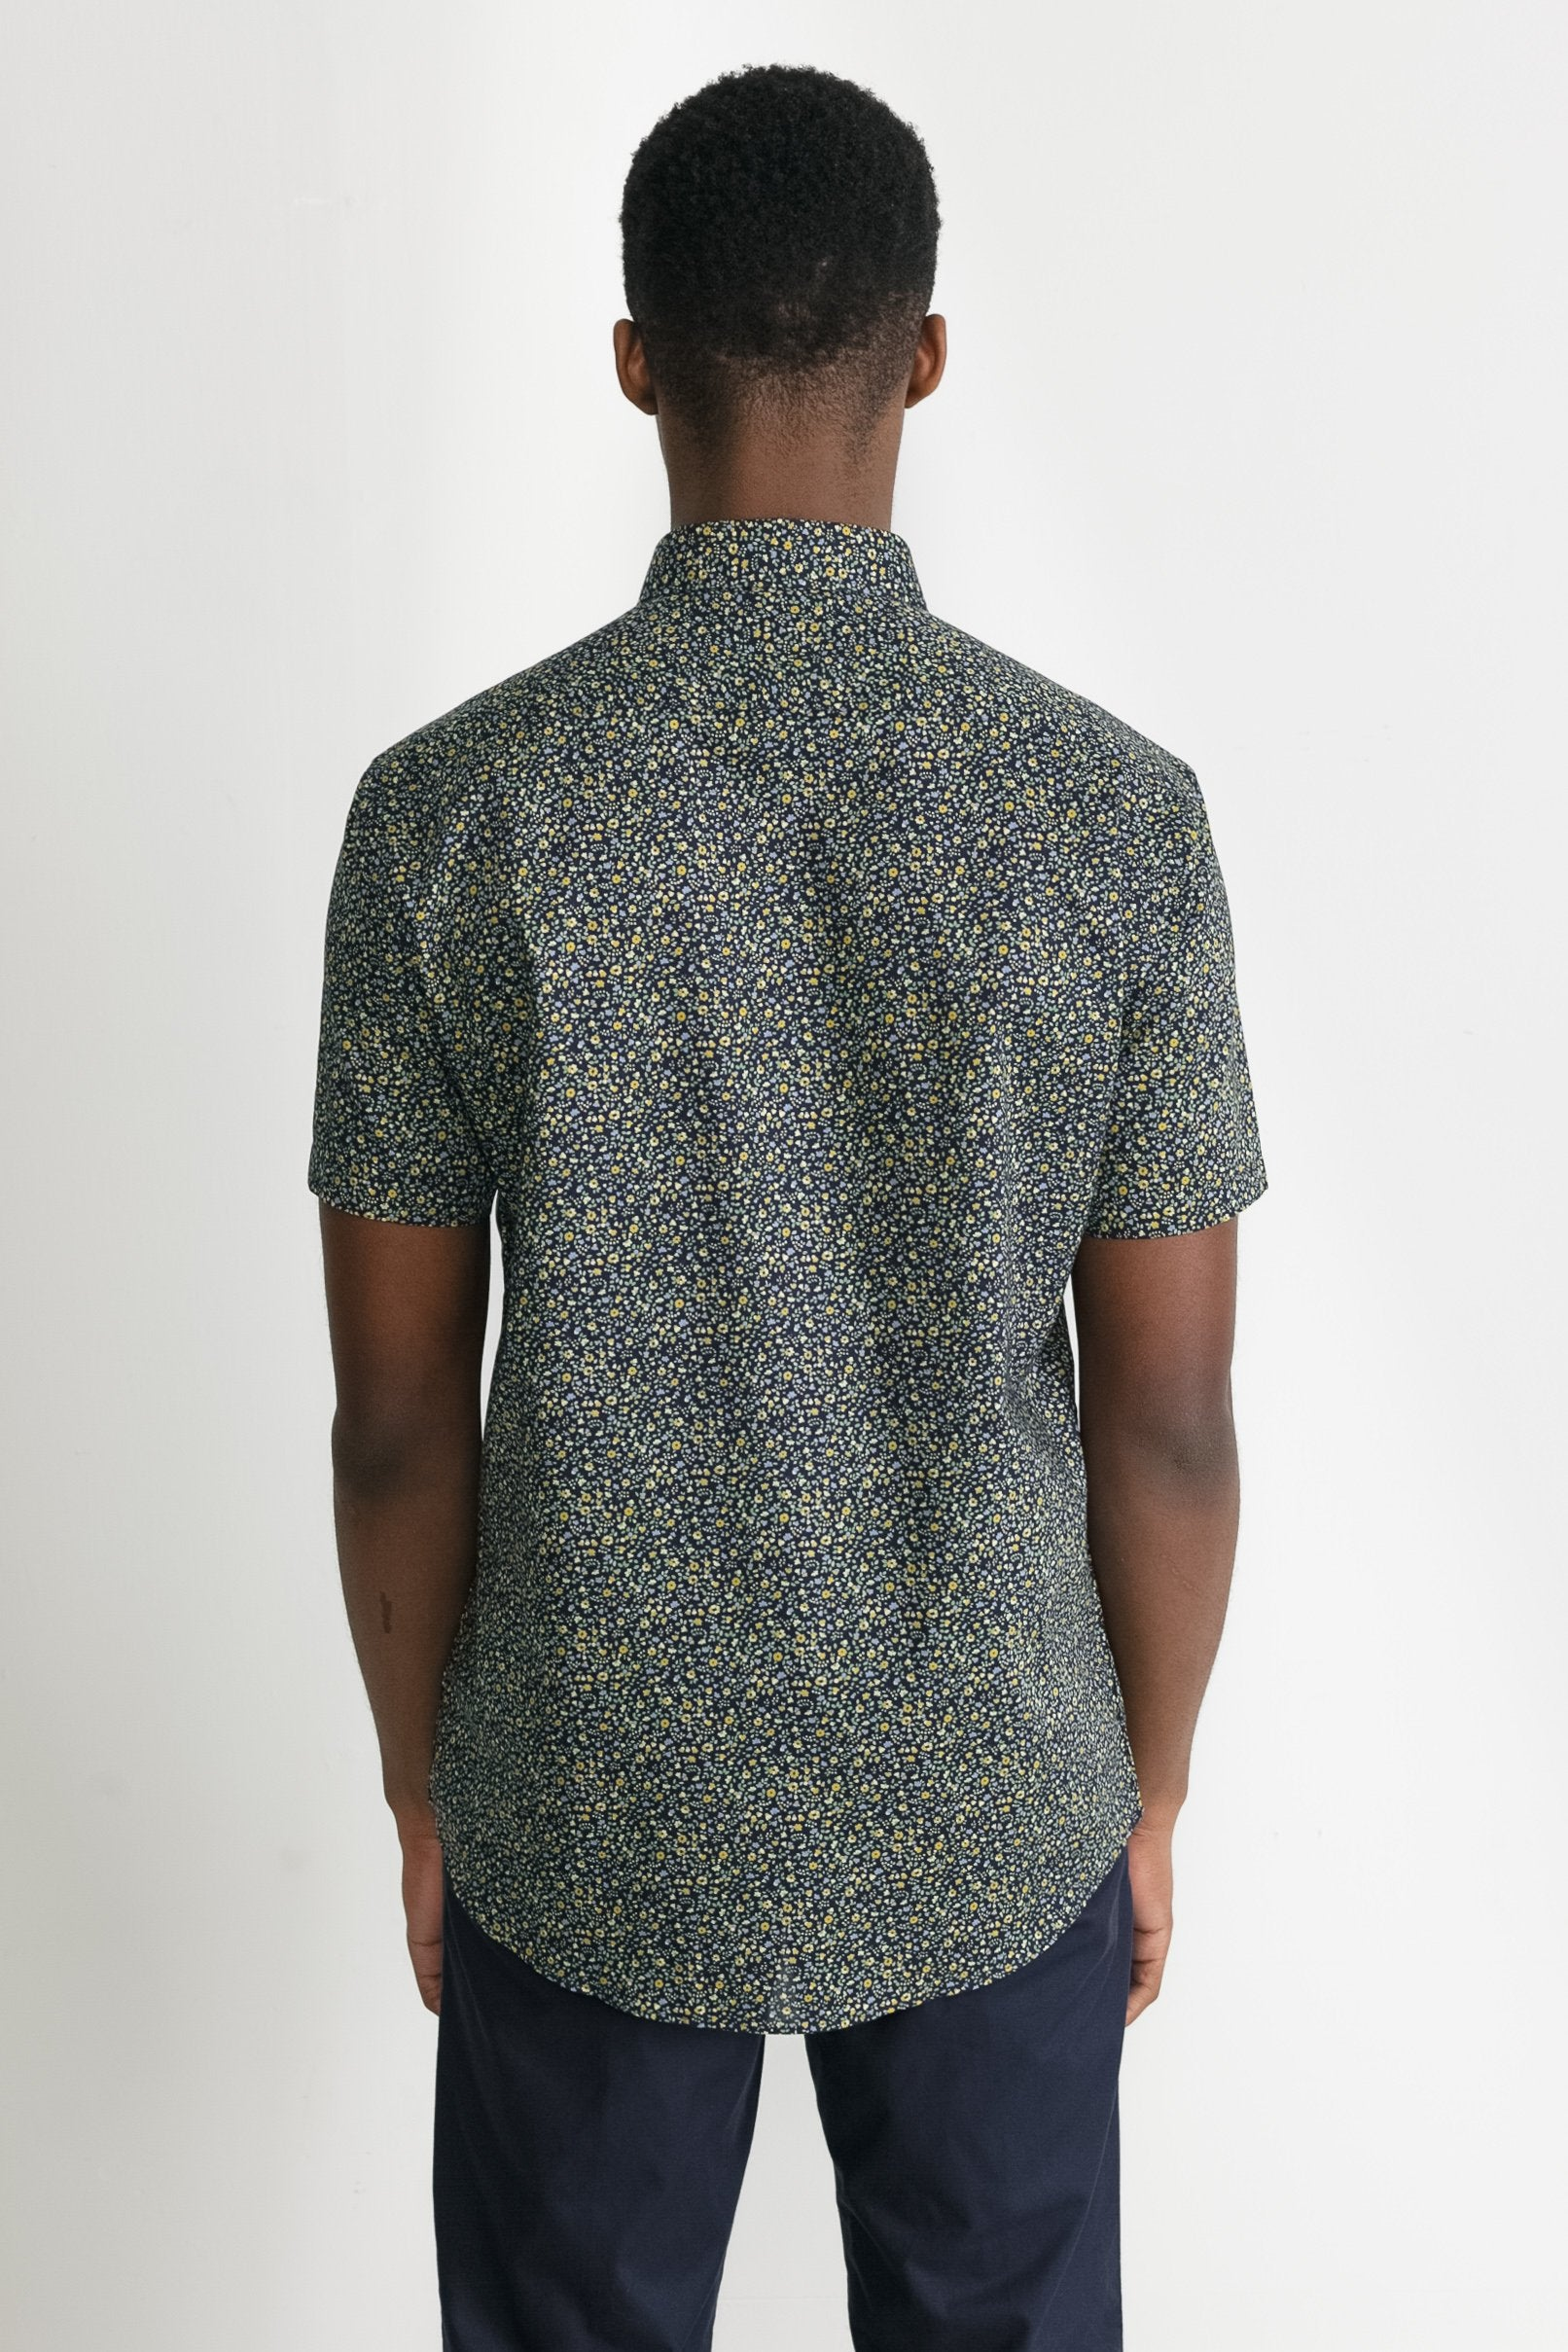 Japanese Floral Print in Navy and Mustard 005